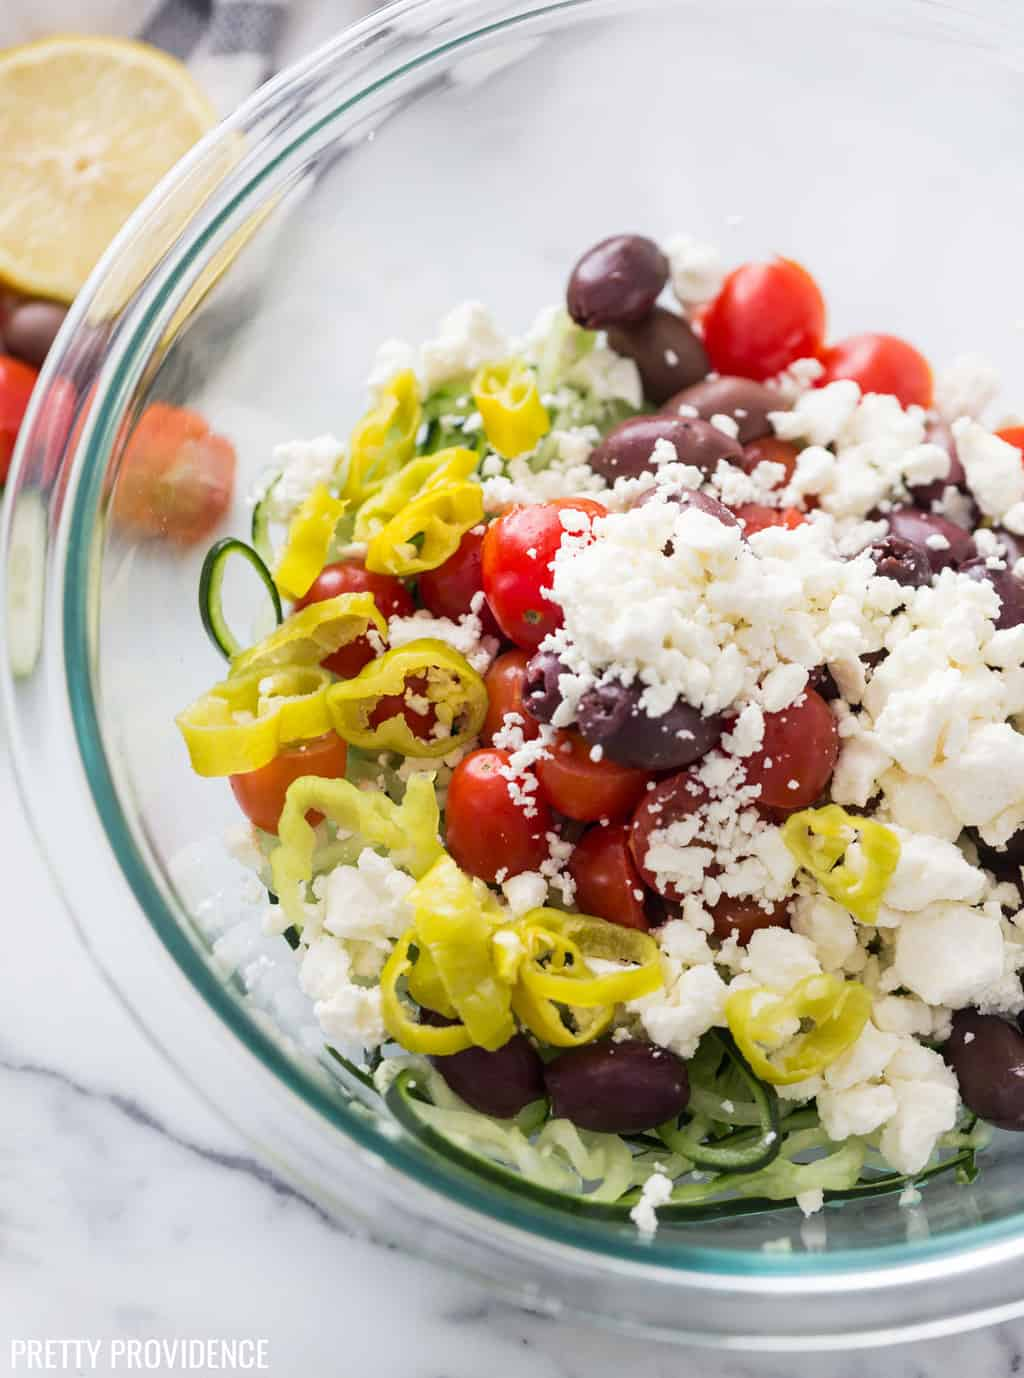 Greek salad ingredients in a bowl with feta cheese, pepperoncini, tomatoes, kalamata olives and spiralized cucumber.